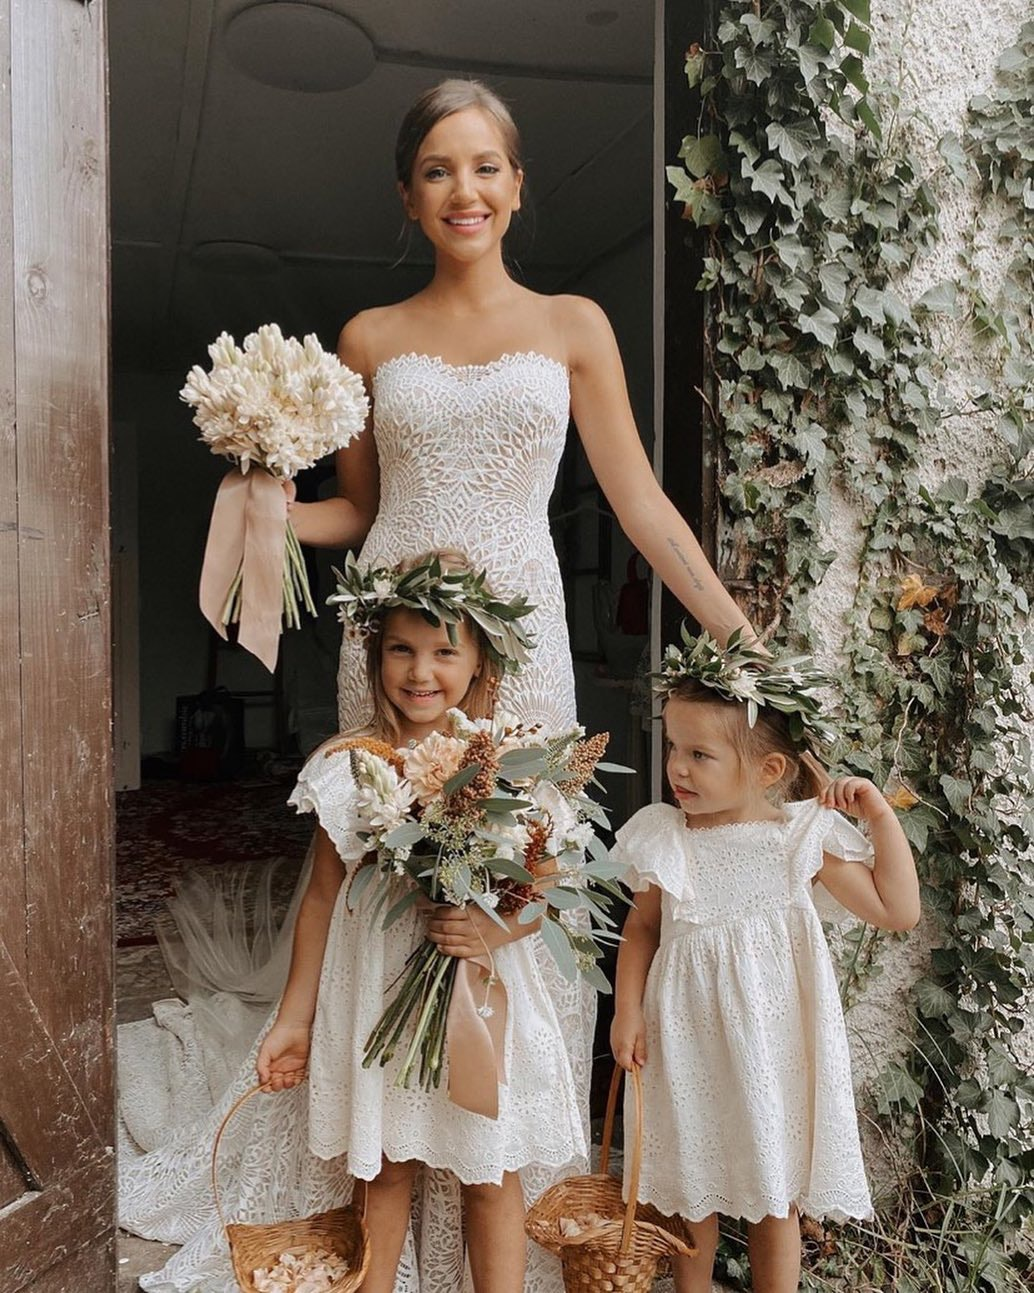 Bride with two flower girls smiling and holding a bouquet